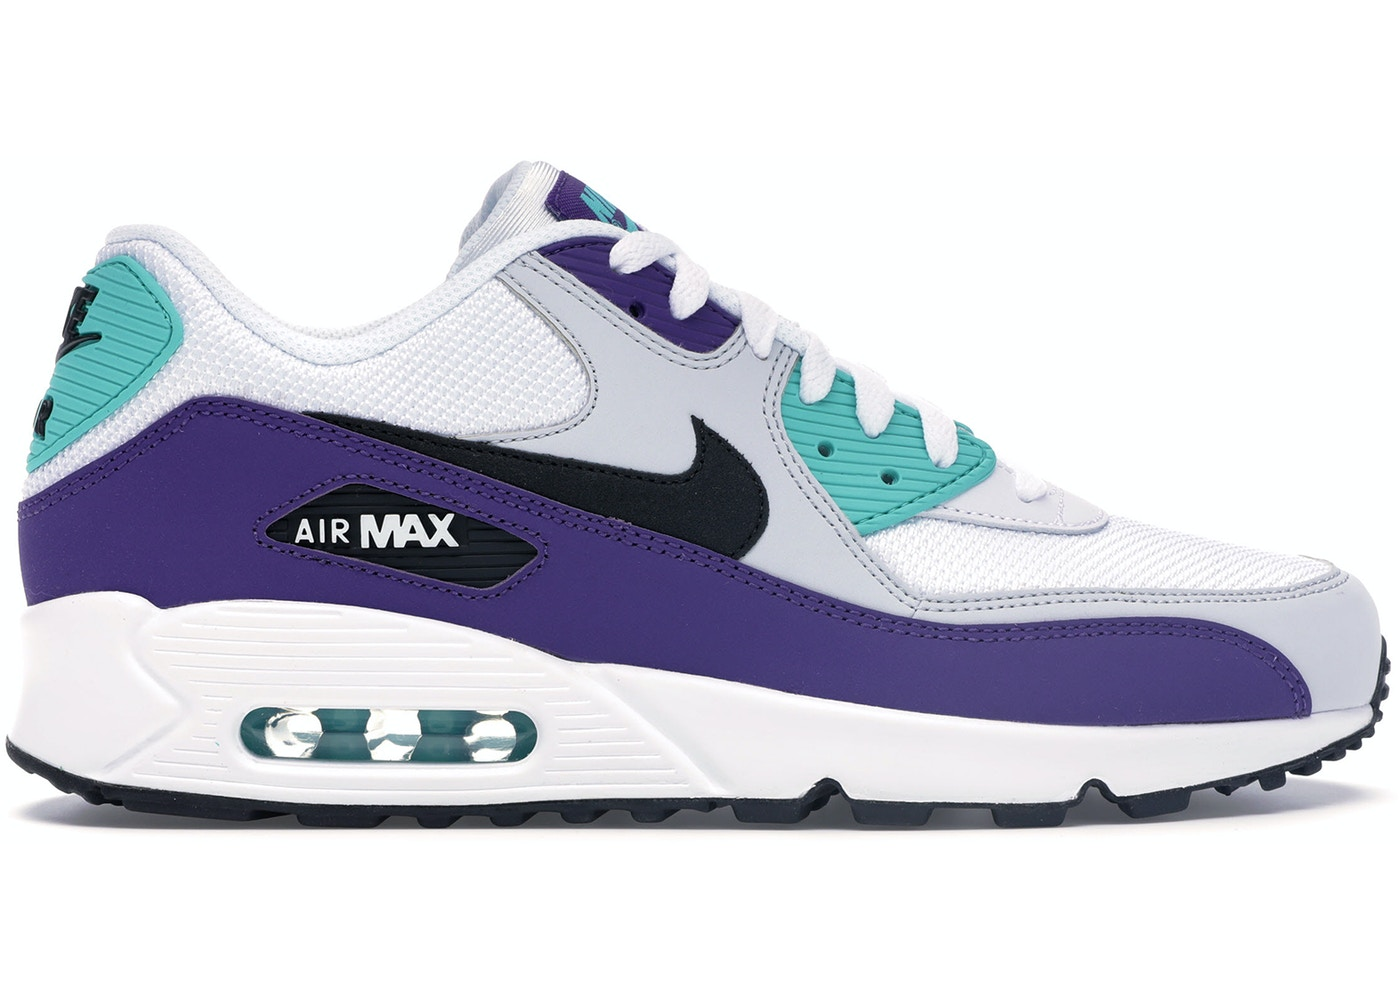 half off 56cb9 d124b Buy Nike Air Max 90 Shoes   Deadstock Sneakers